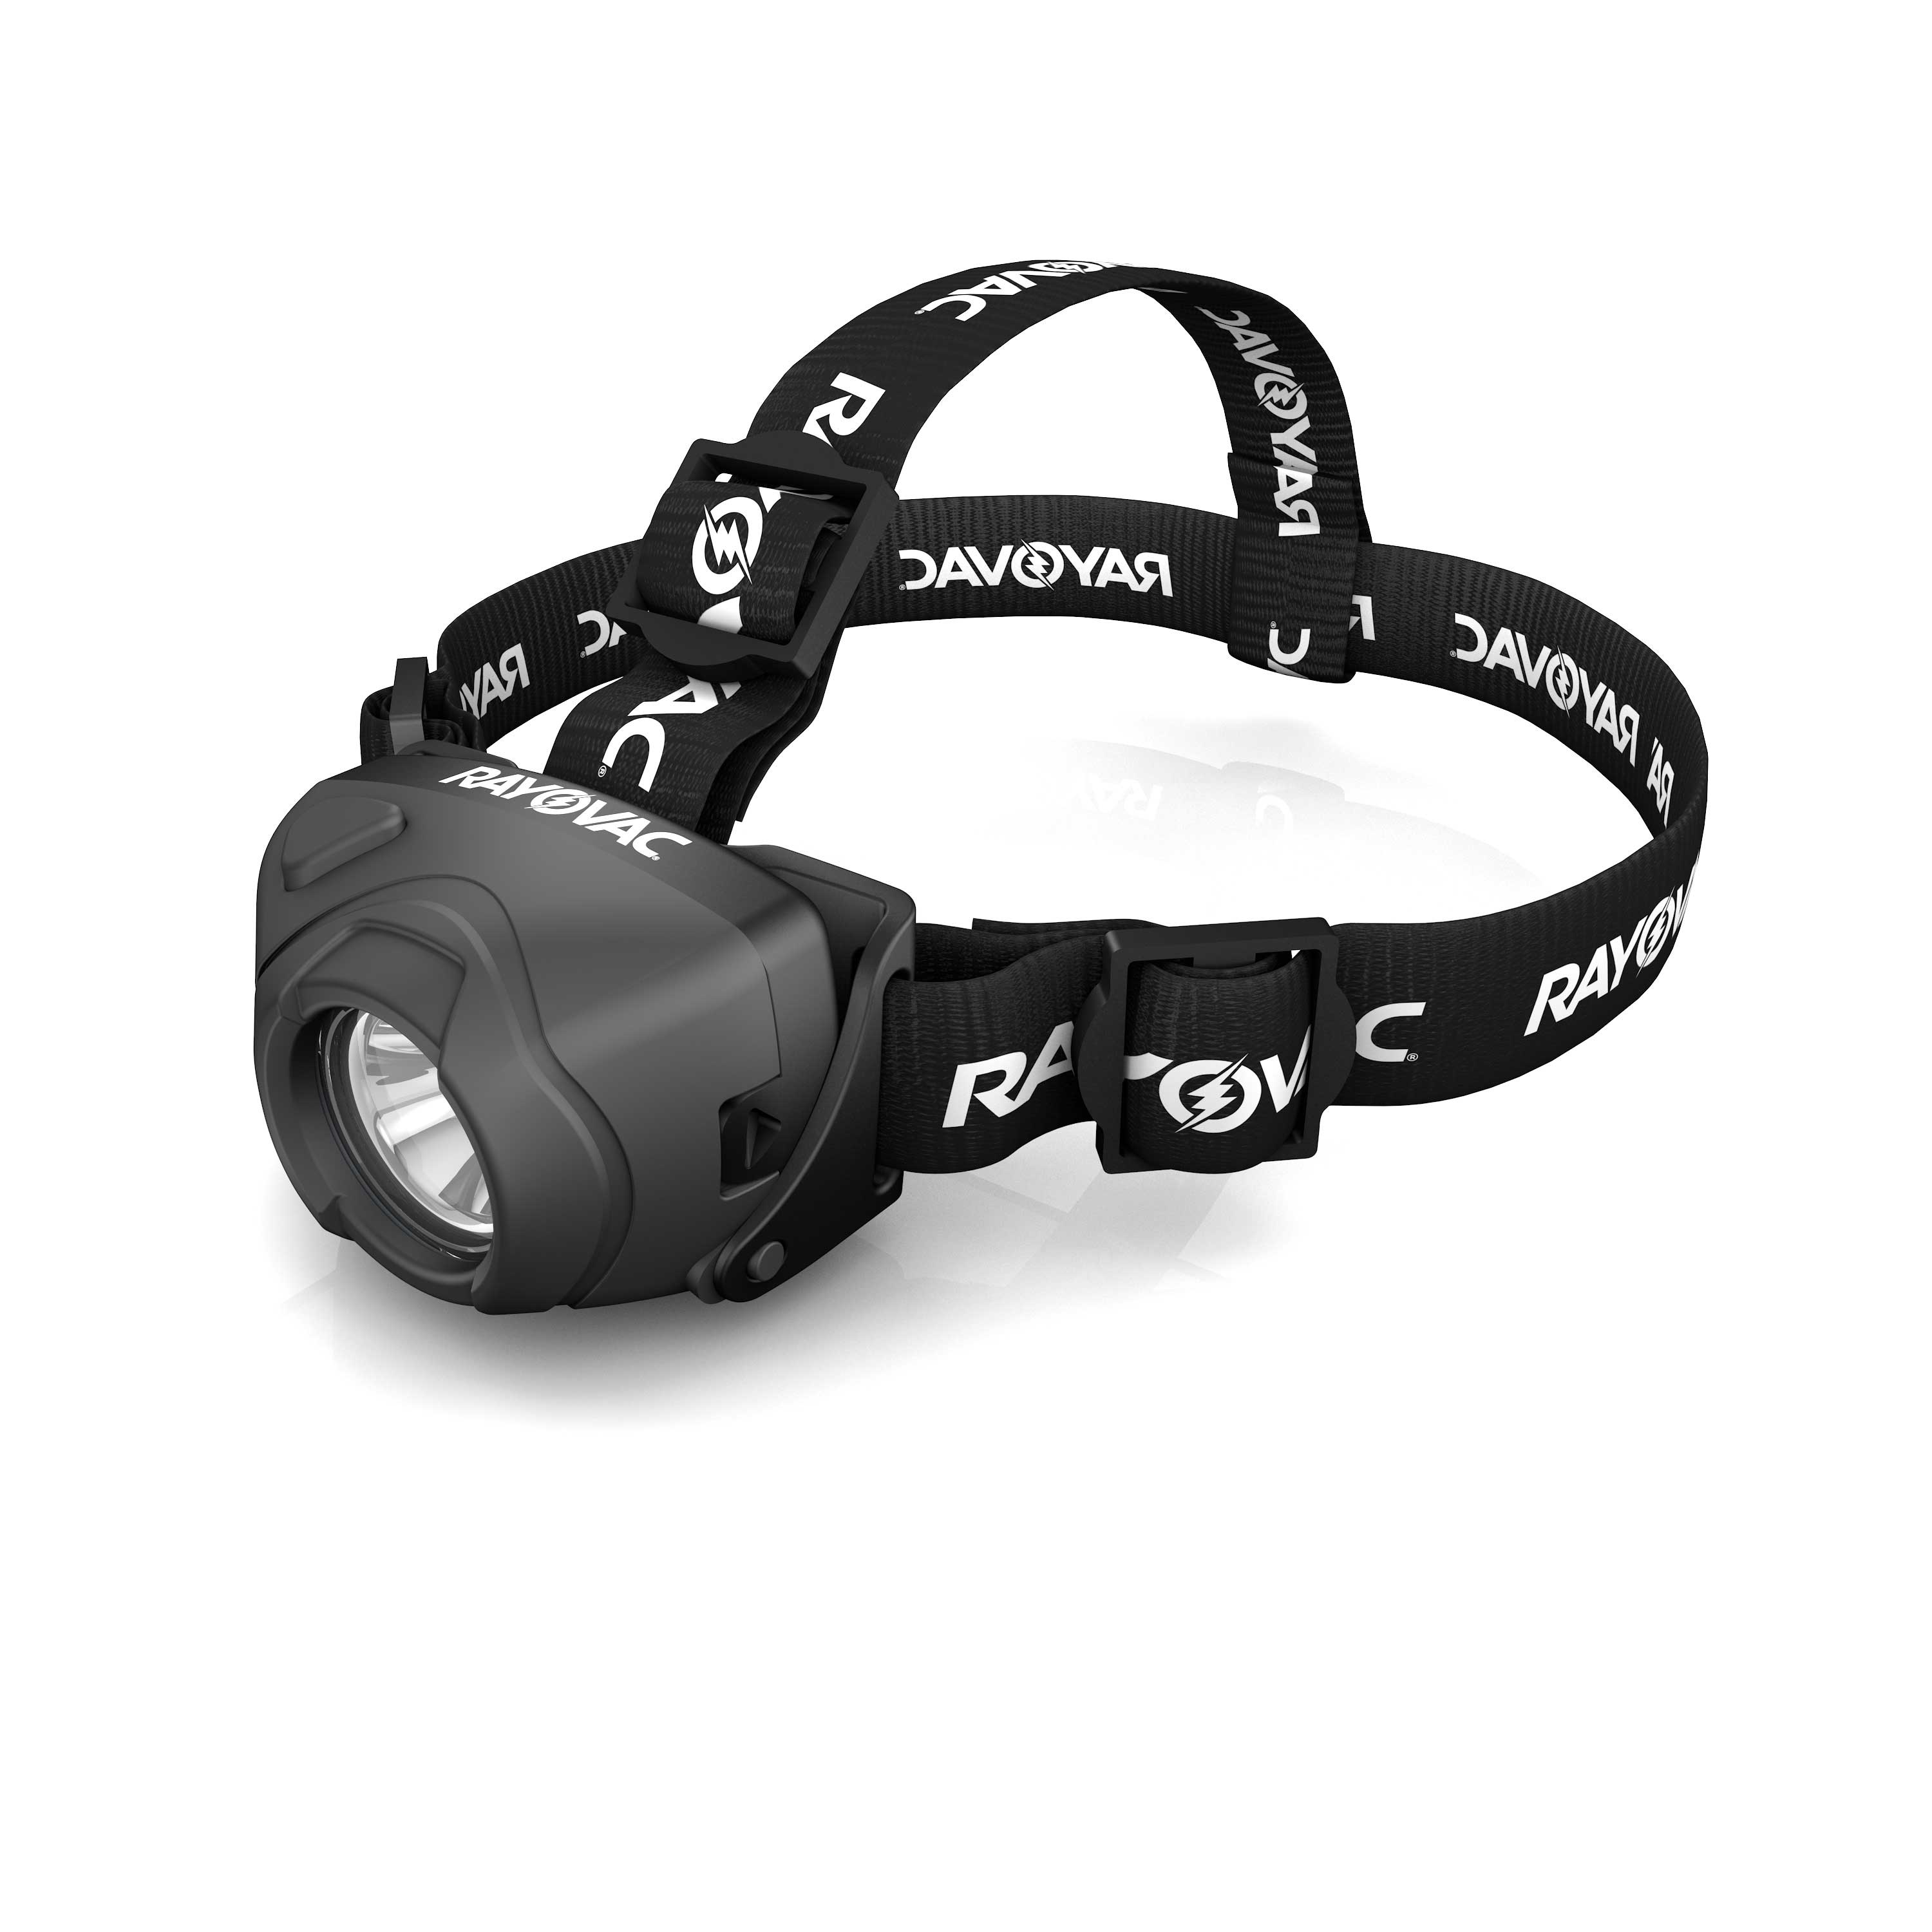 Rayovac Workhorse Pro 3AAA CREE LED Virtually Indestructible High Powered Headlight DIYPHL3AAA-BTA